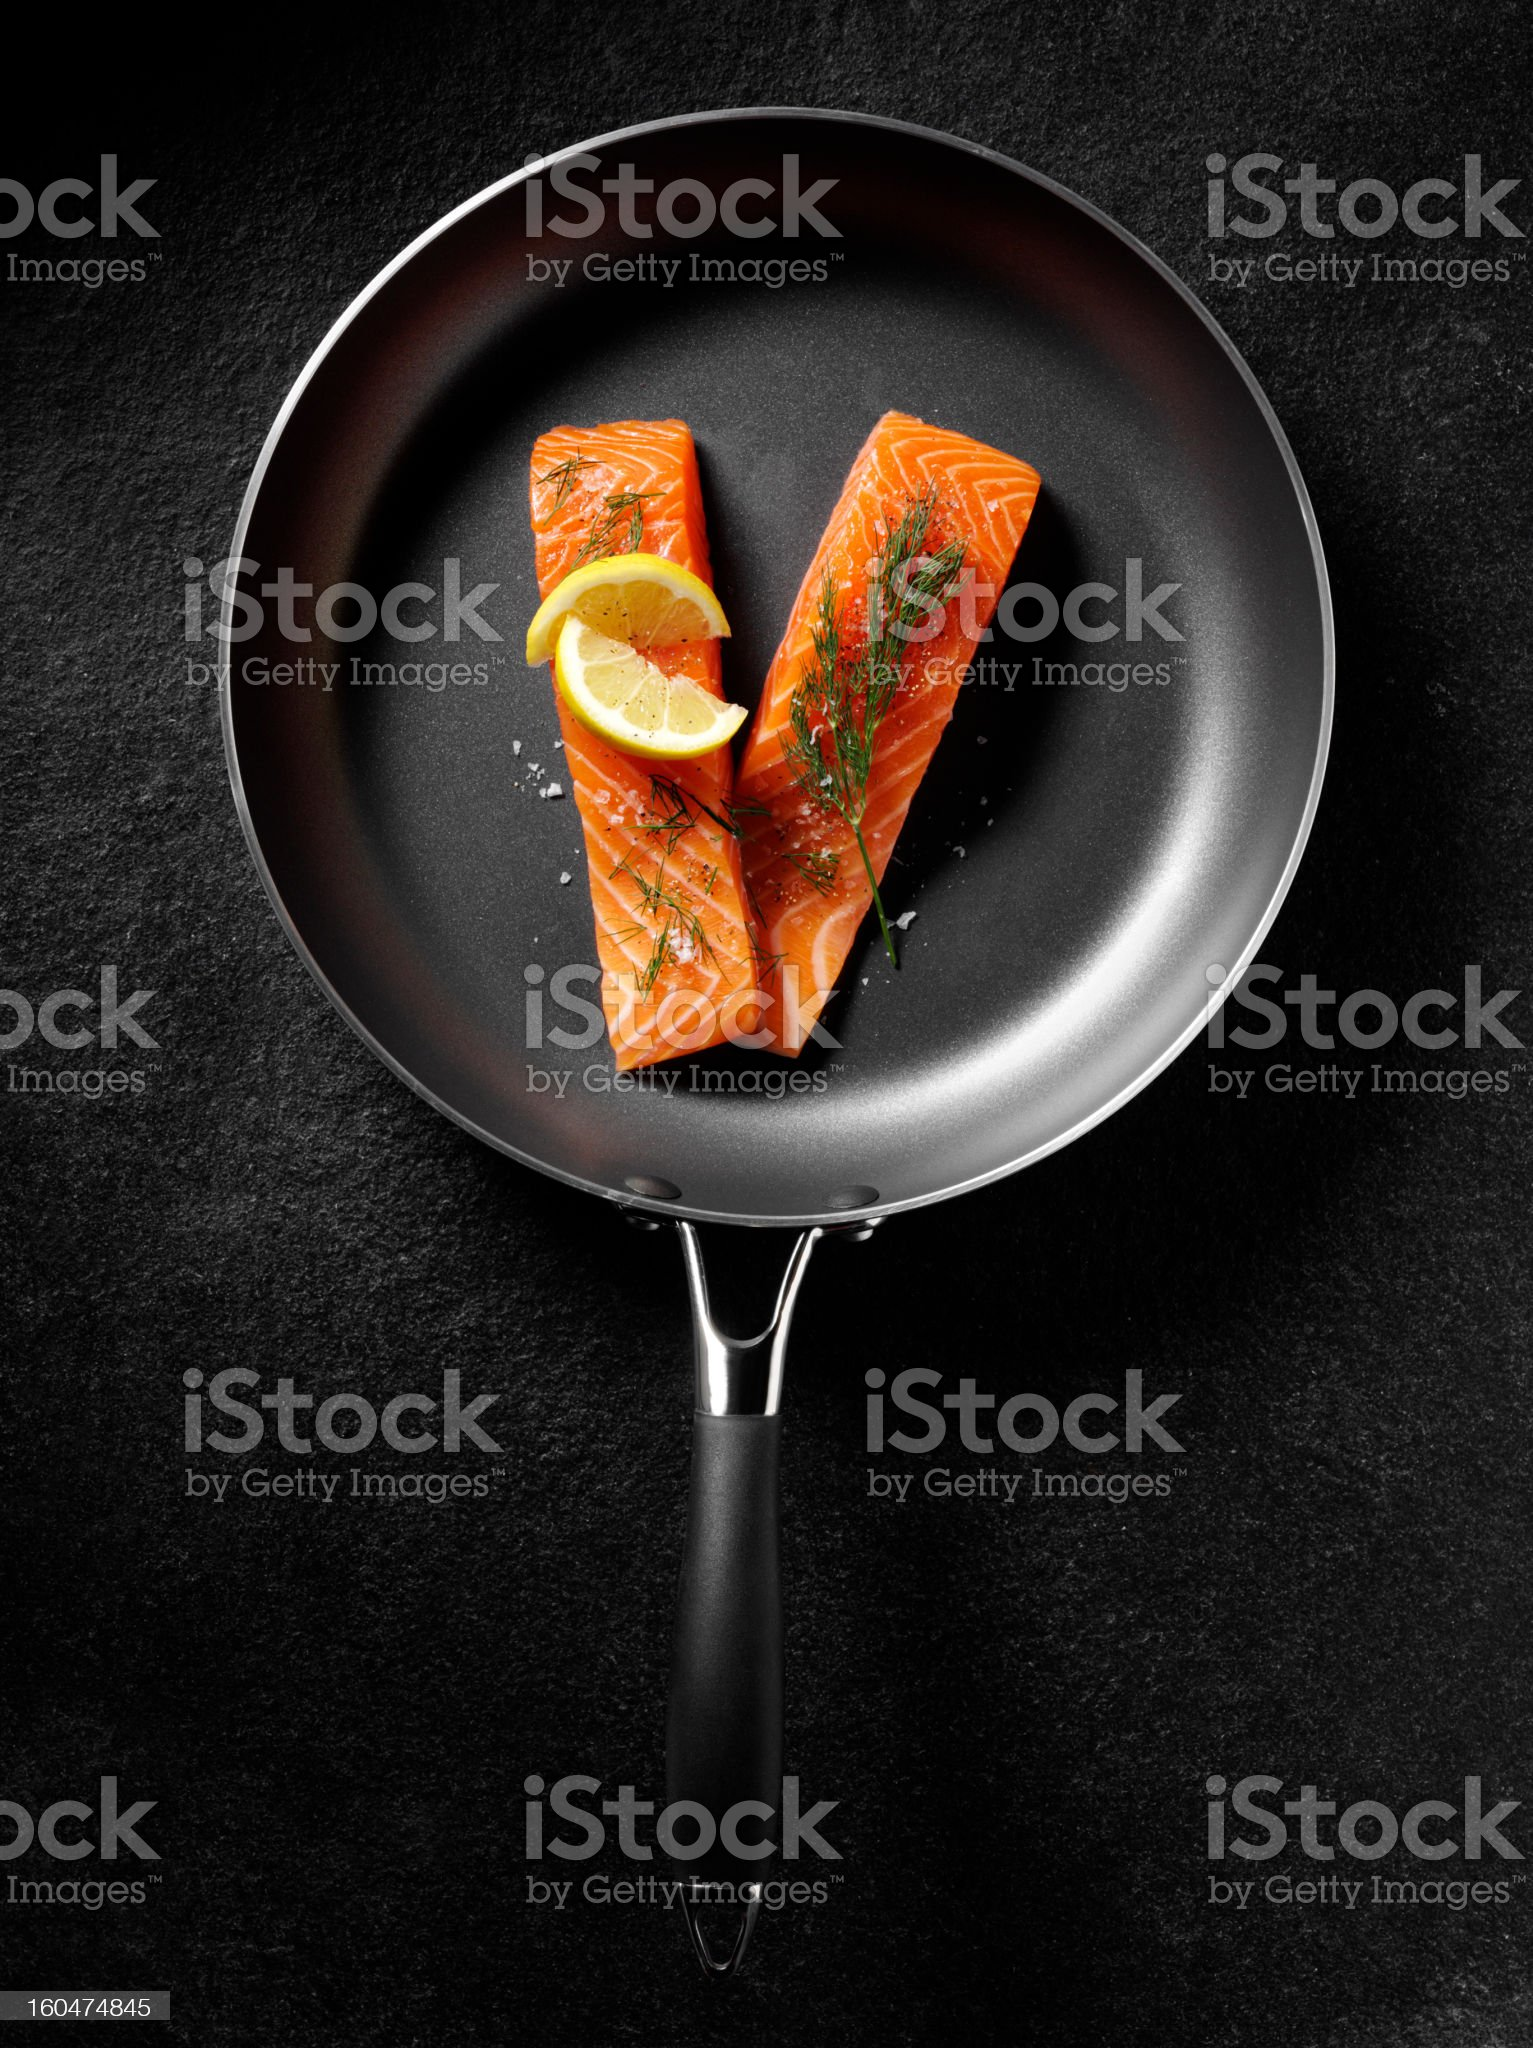 Uncooked Salmon Fillets royalty-free stock photo